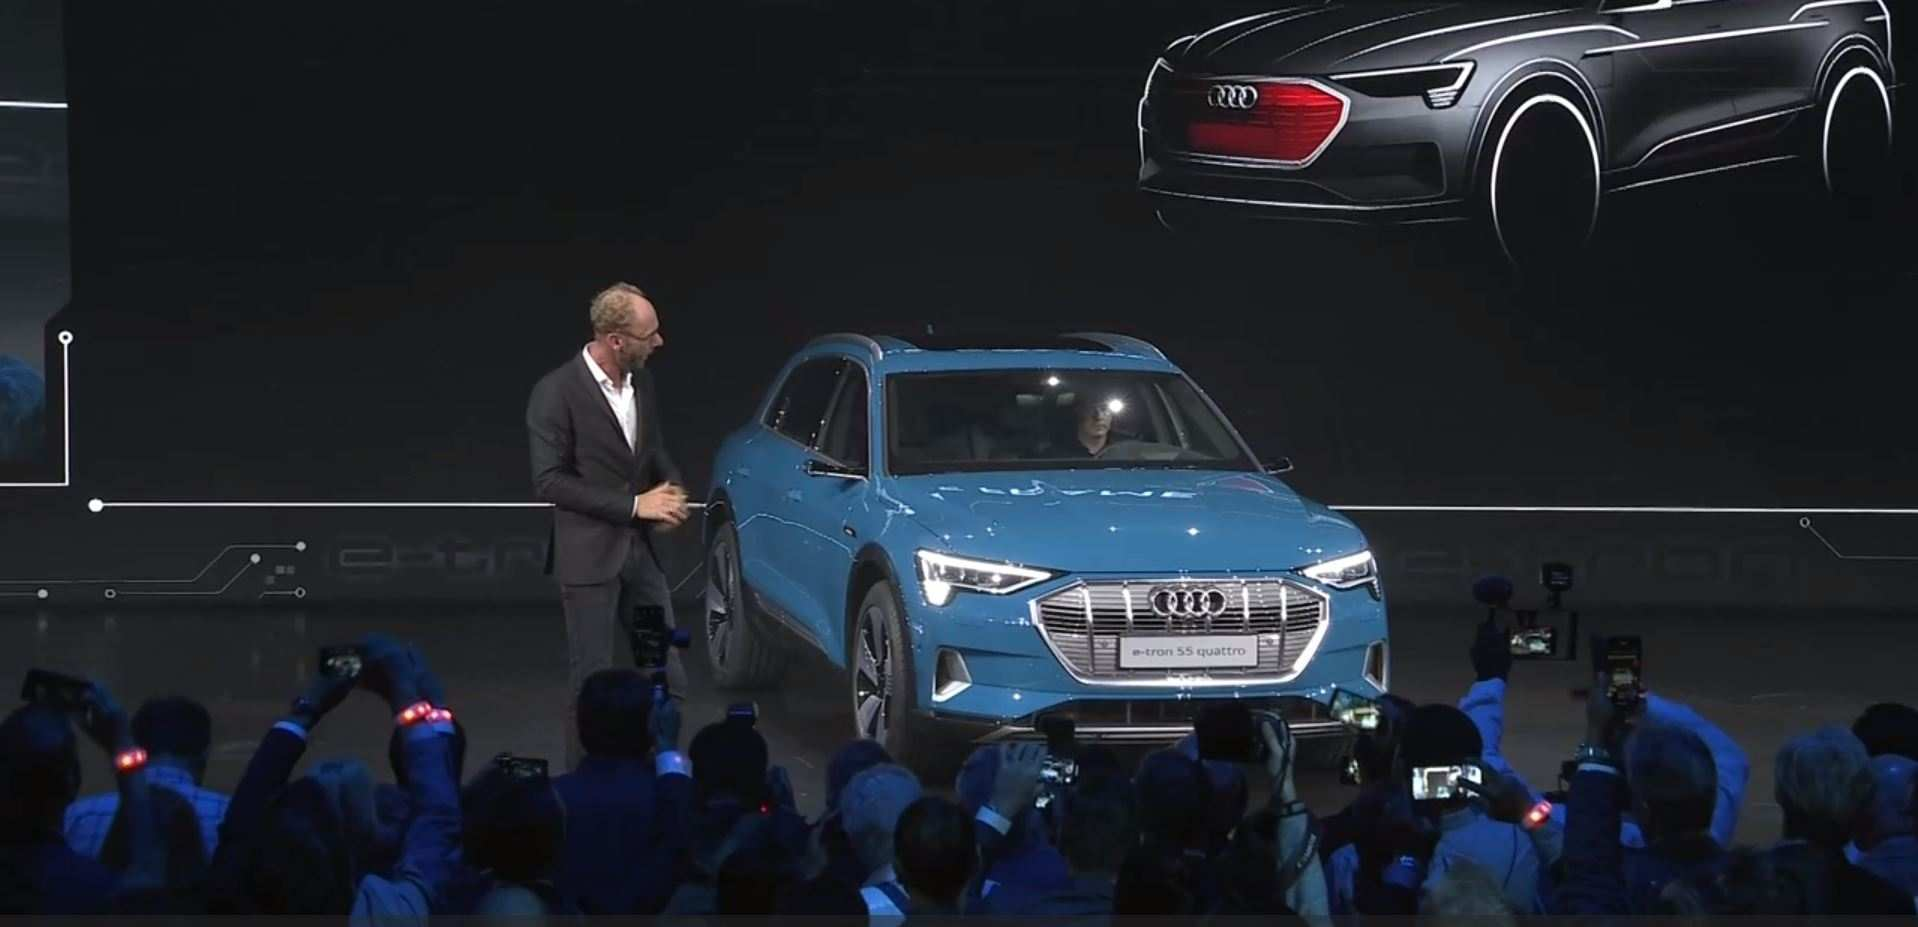 76 Best Review 2019 Audi E Tron Quattro Price Review by 2019 Audi E Tron Quattro Price